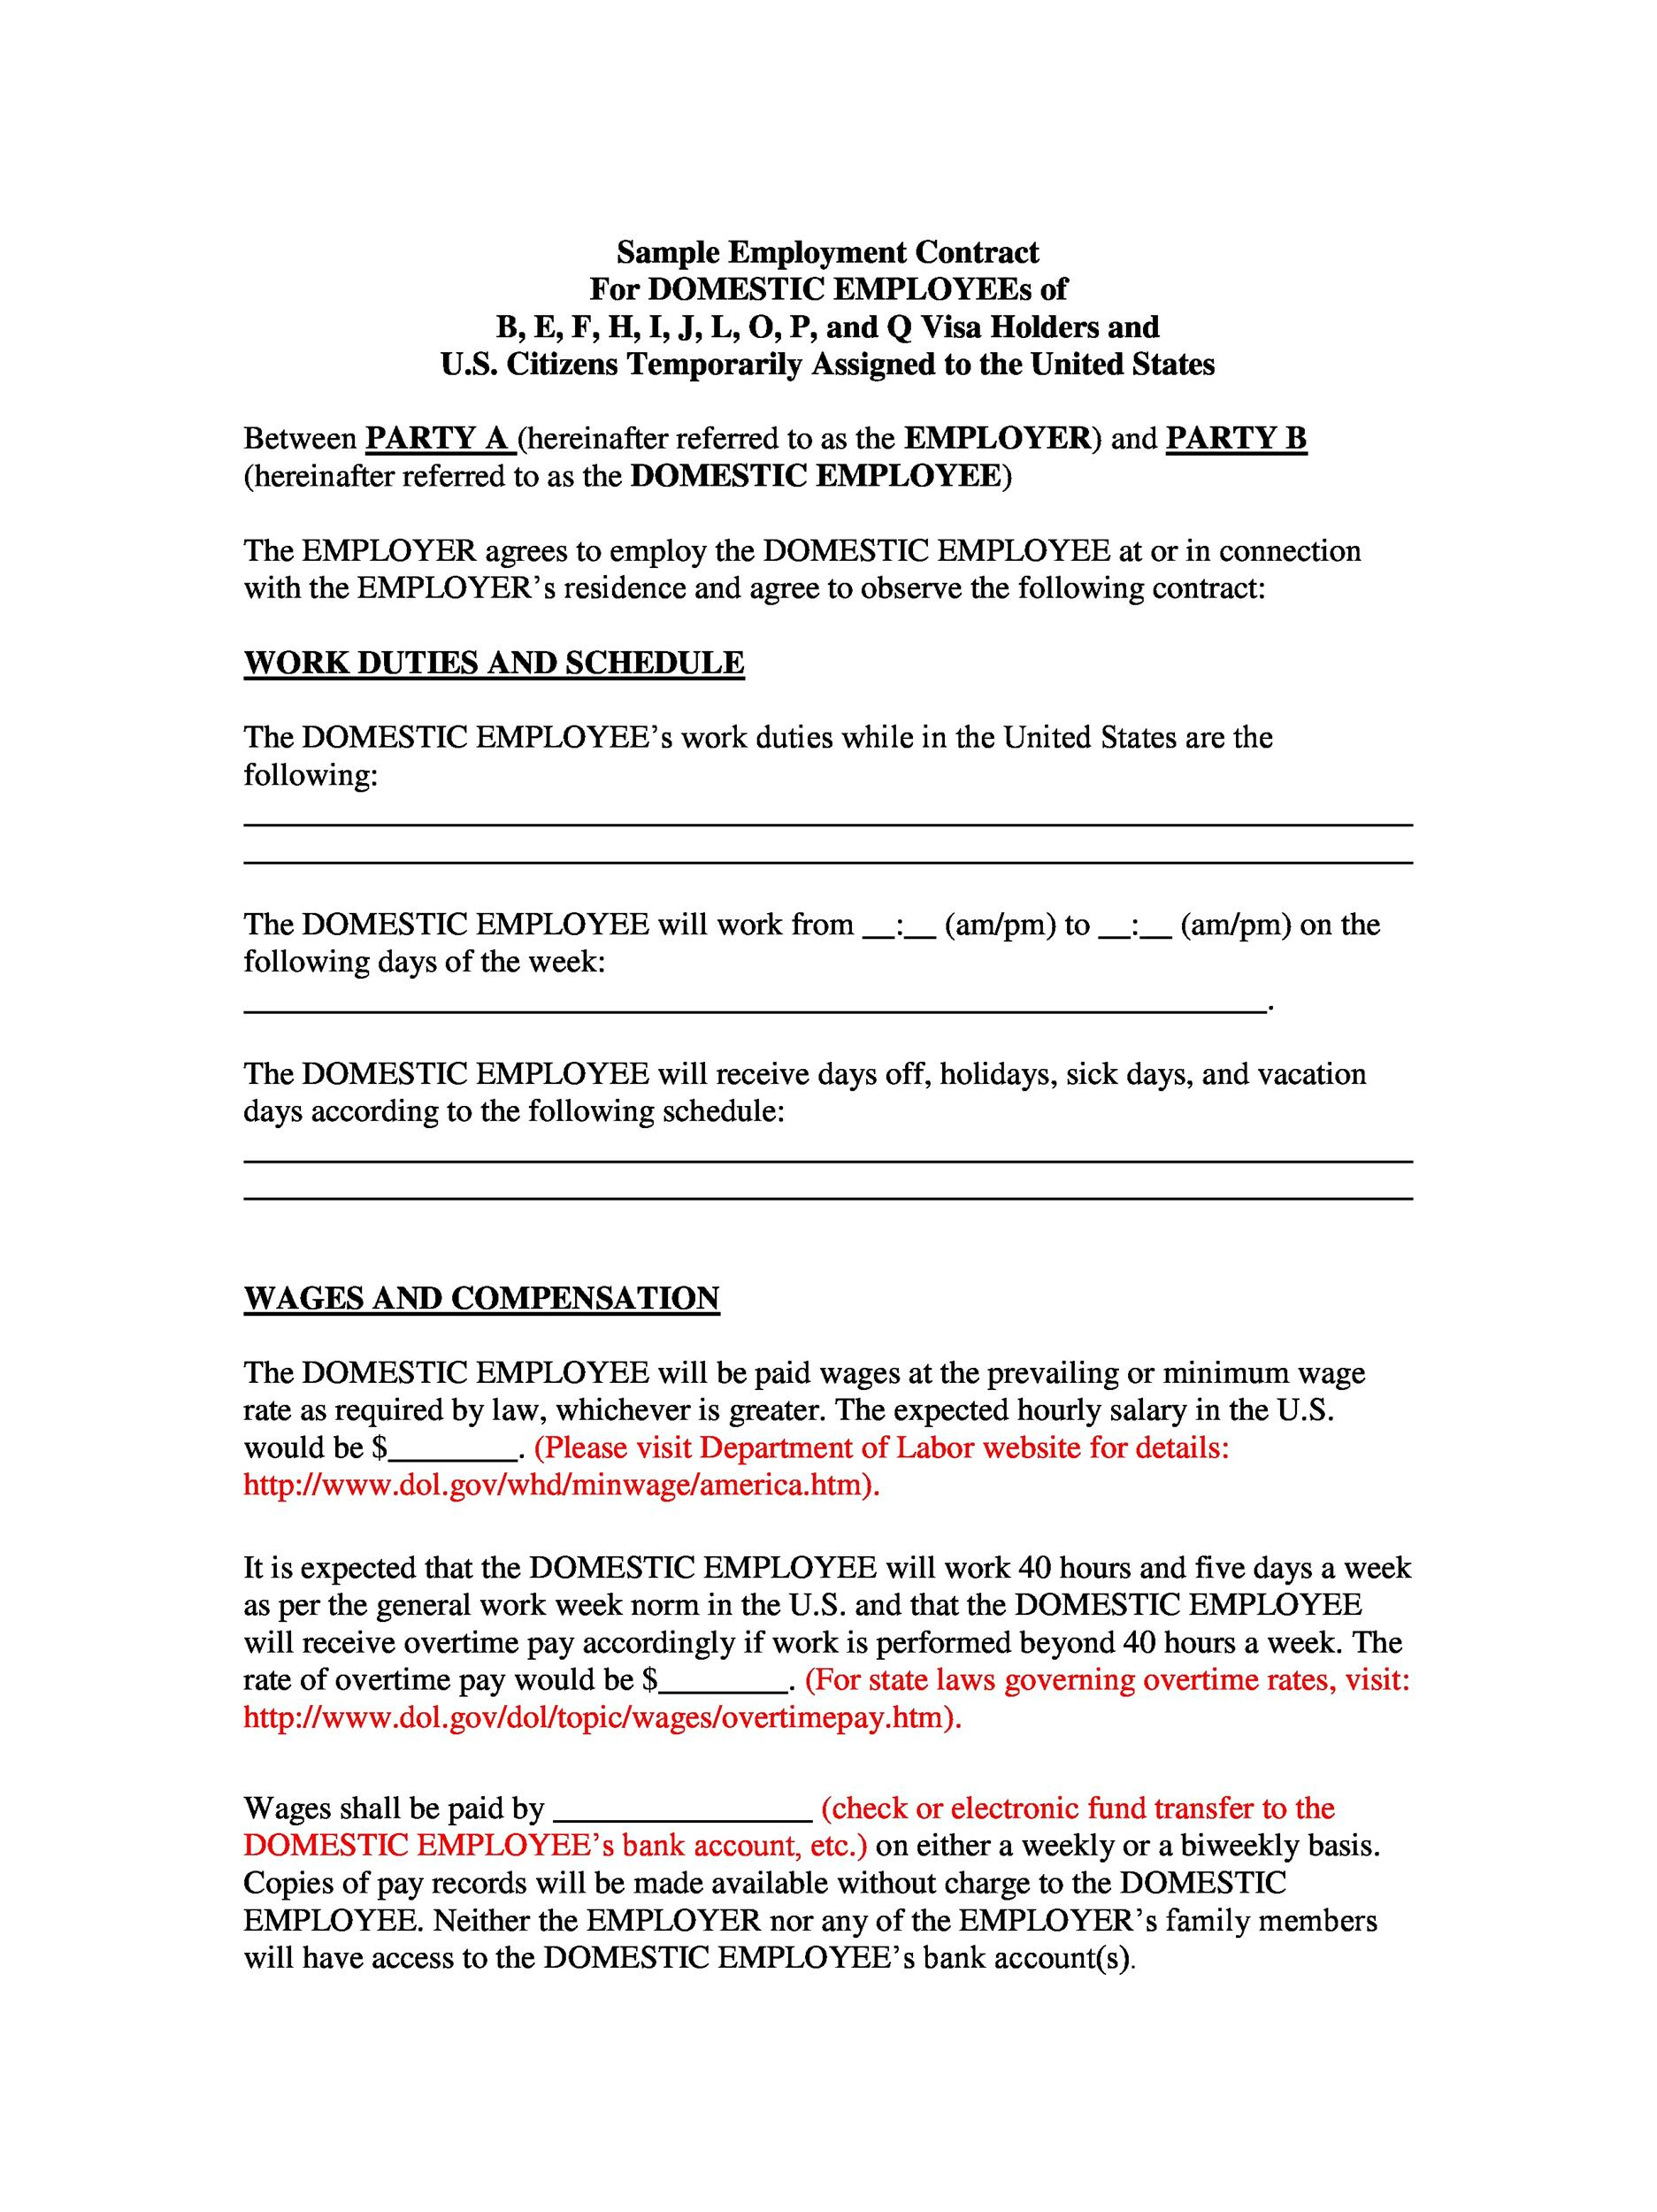 40 Great Contract Templates (Employment, Construction, Photography etc) - Work Contract Template